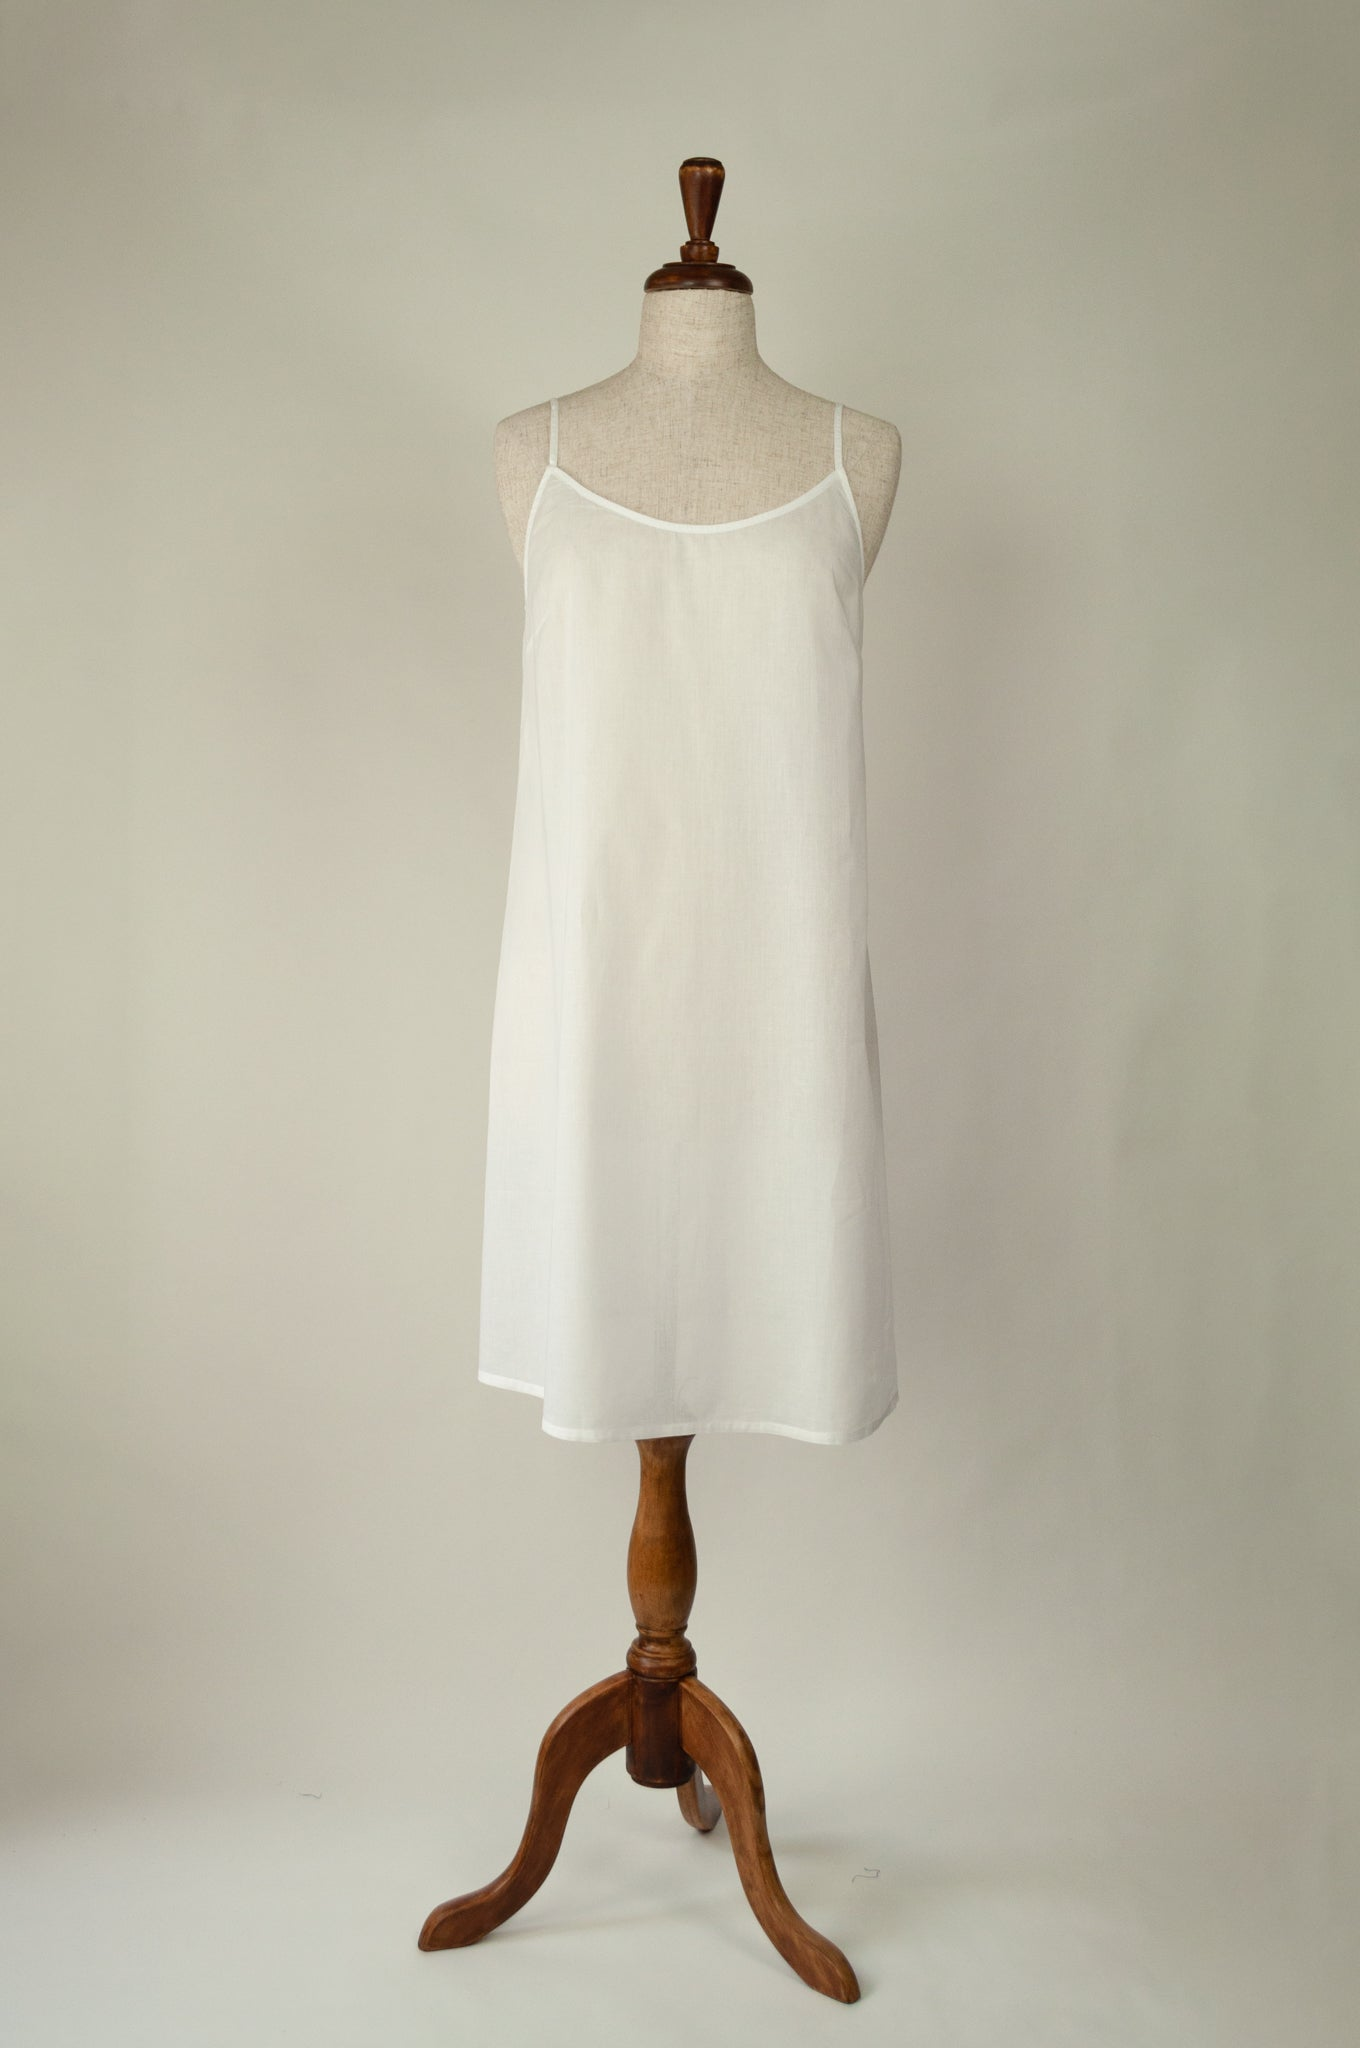 Ladies pure cotton voile full slip or petticoat with adjustable straps in ecru.